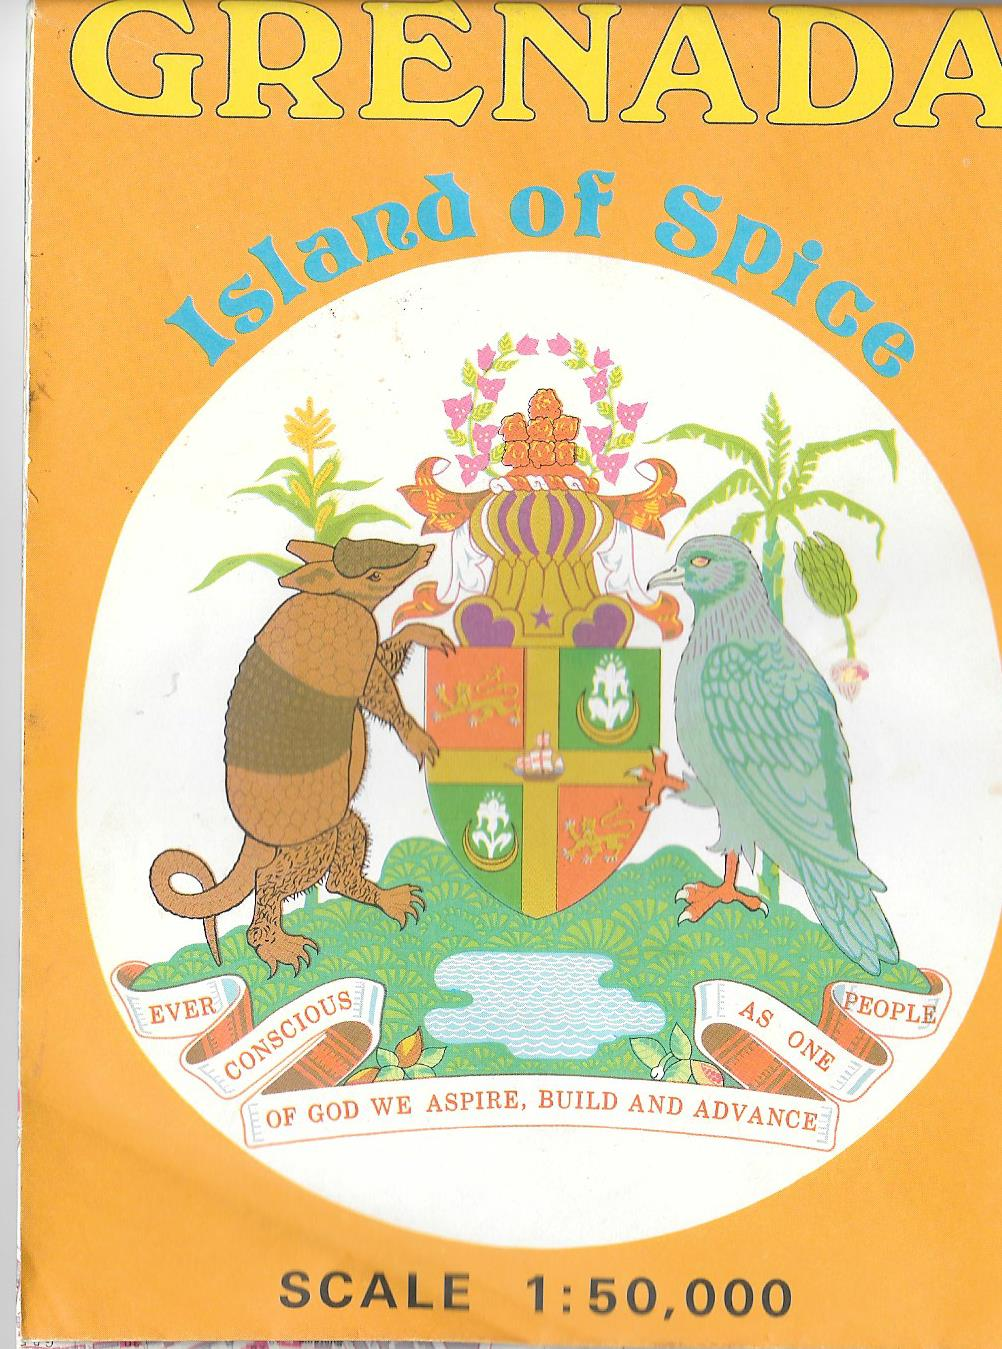 Grenada tourist map from 1983 libertybelle diaries